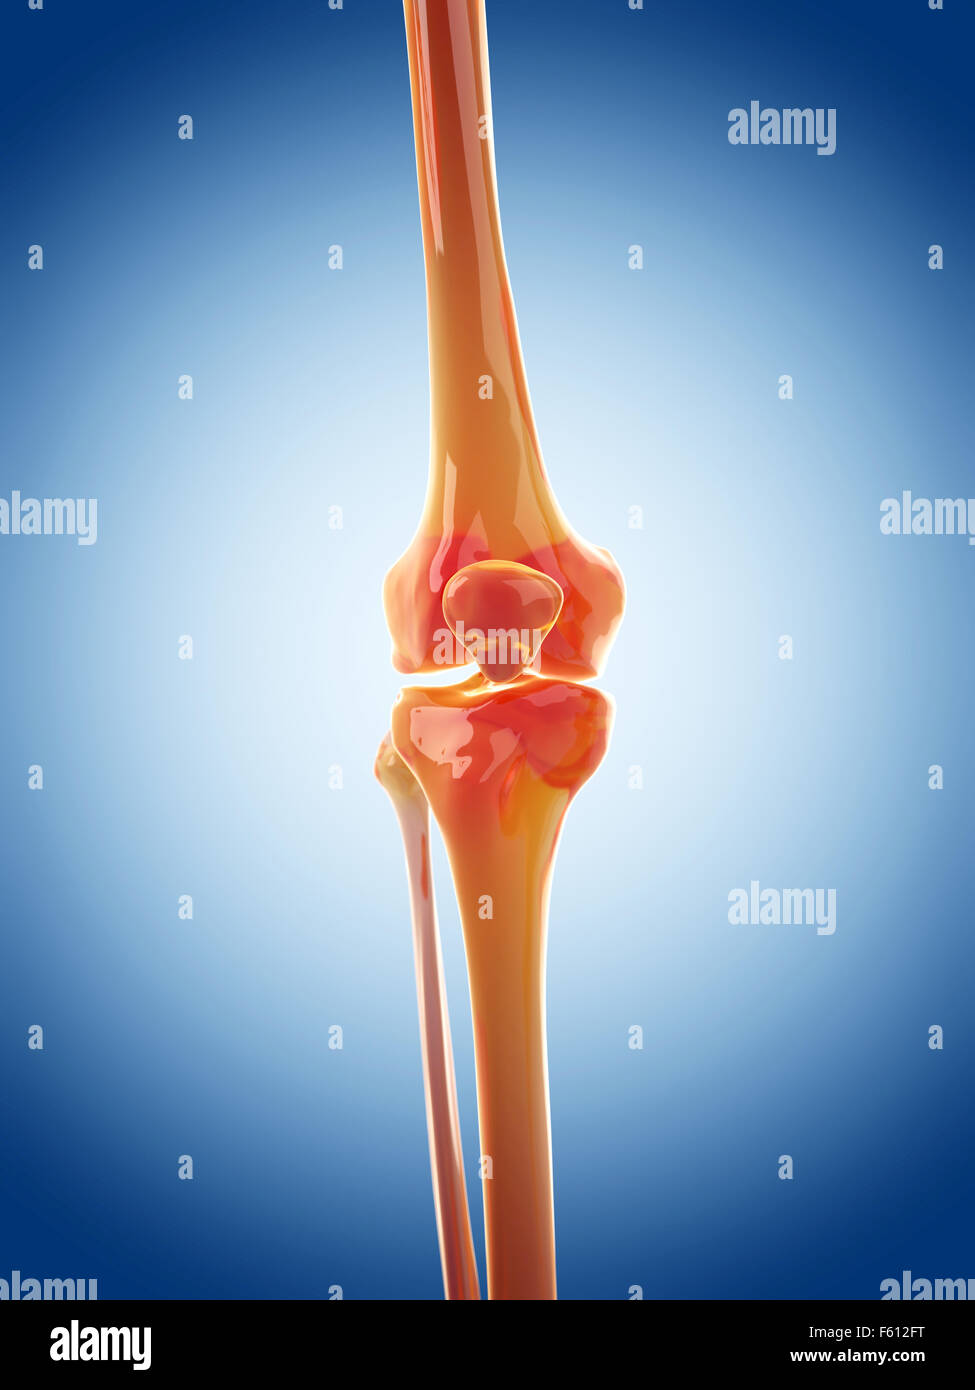 medically accurate illustration of the knee joint - Stock Image